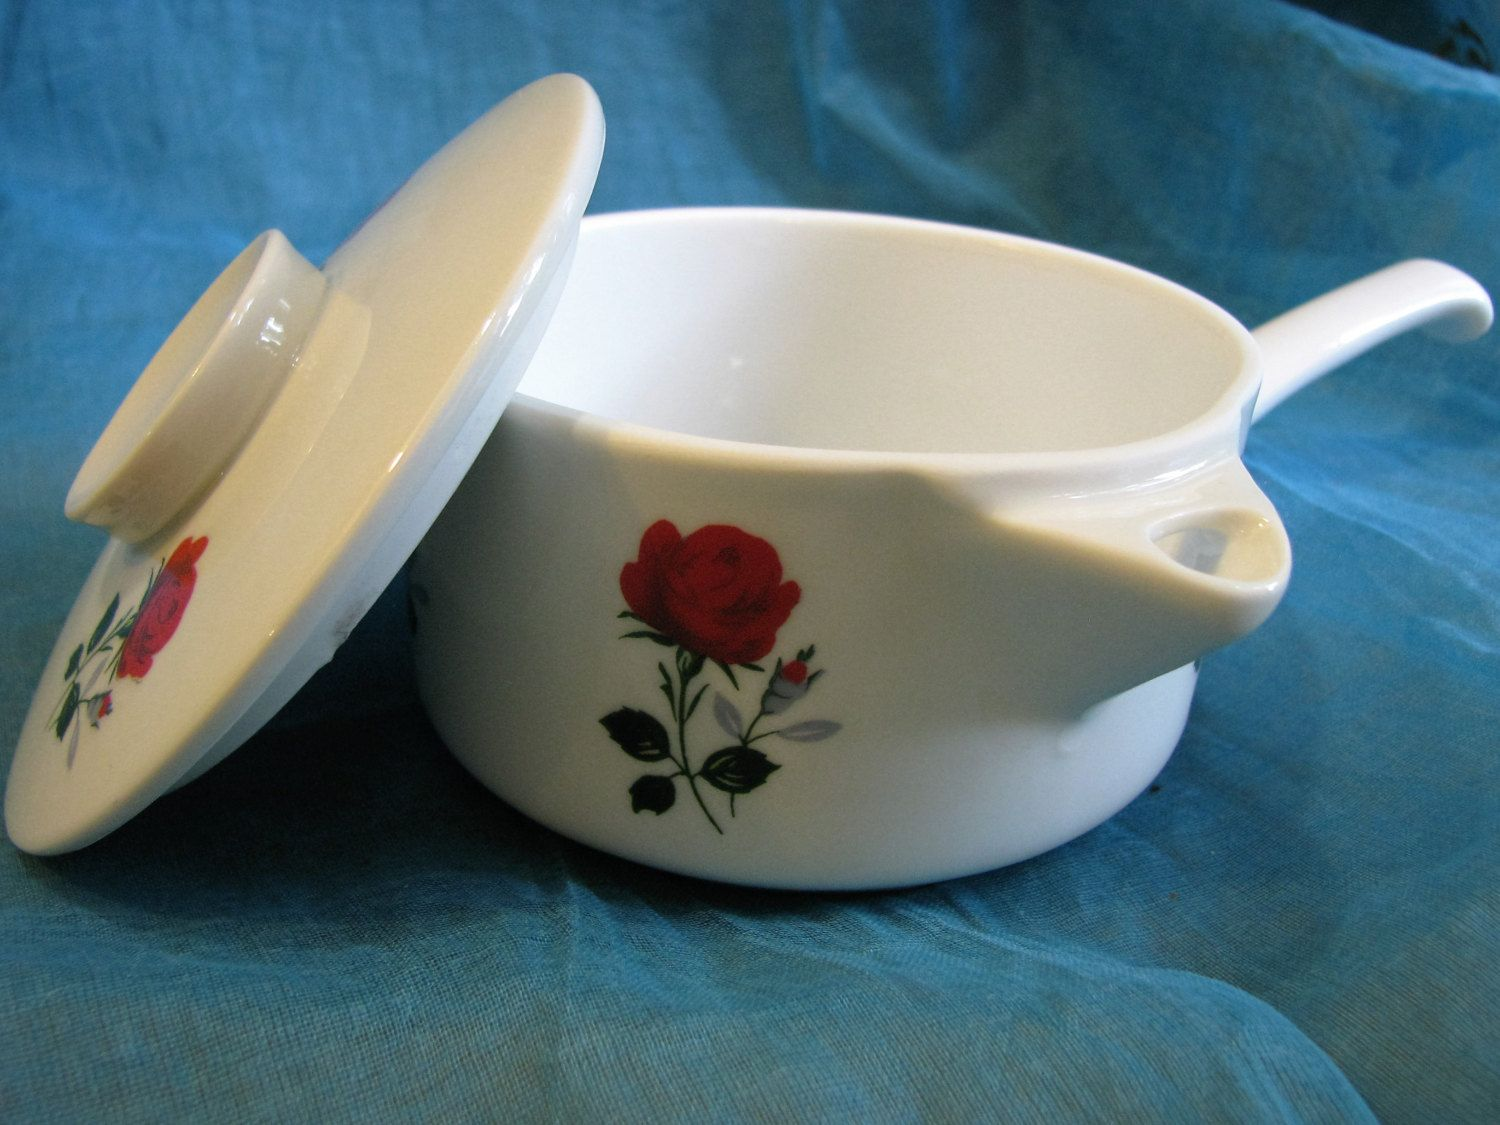 Cute 1960s Ovensafe Dish Skillet Pan Kasserole with Lid – German Winterling Porcelain – Vintage retro Mid Century Design – Rose Décor von everglaze auf Etsy